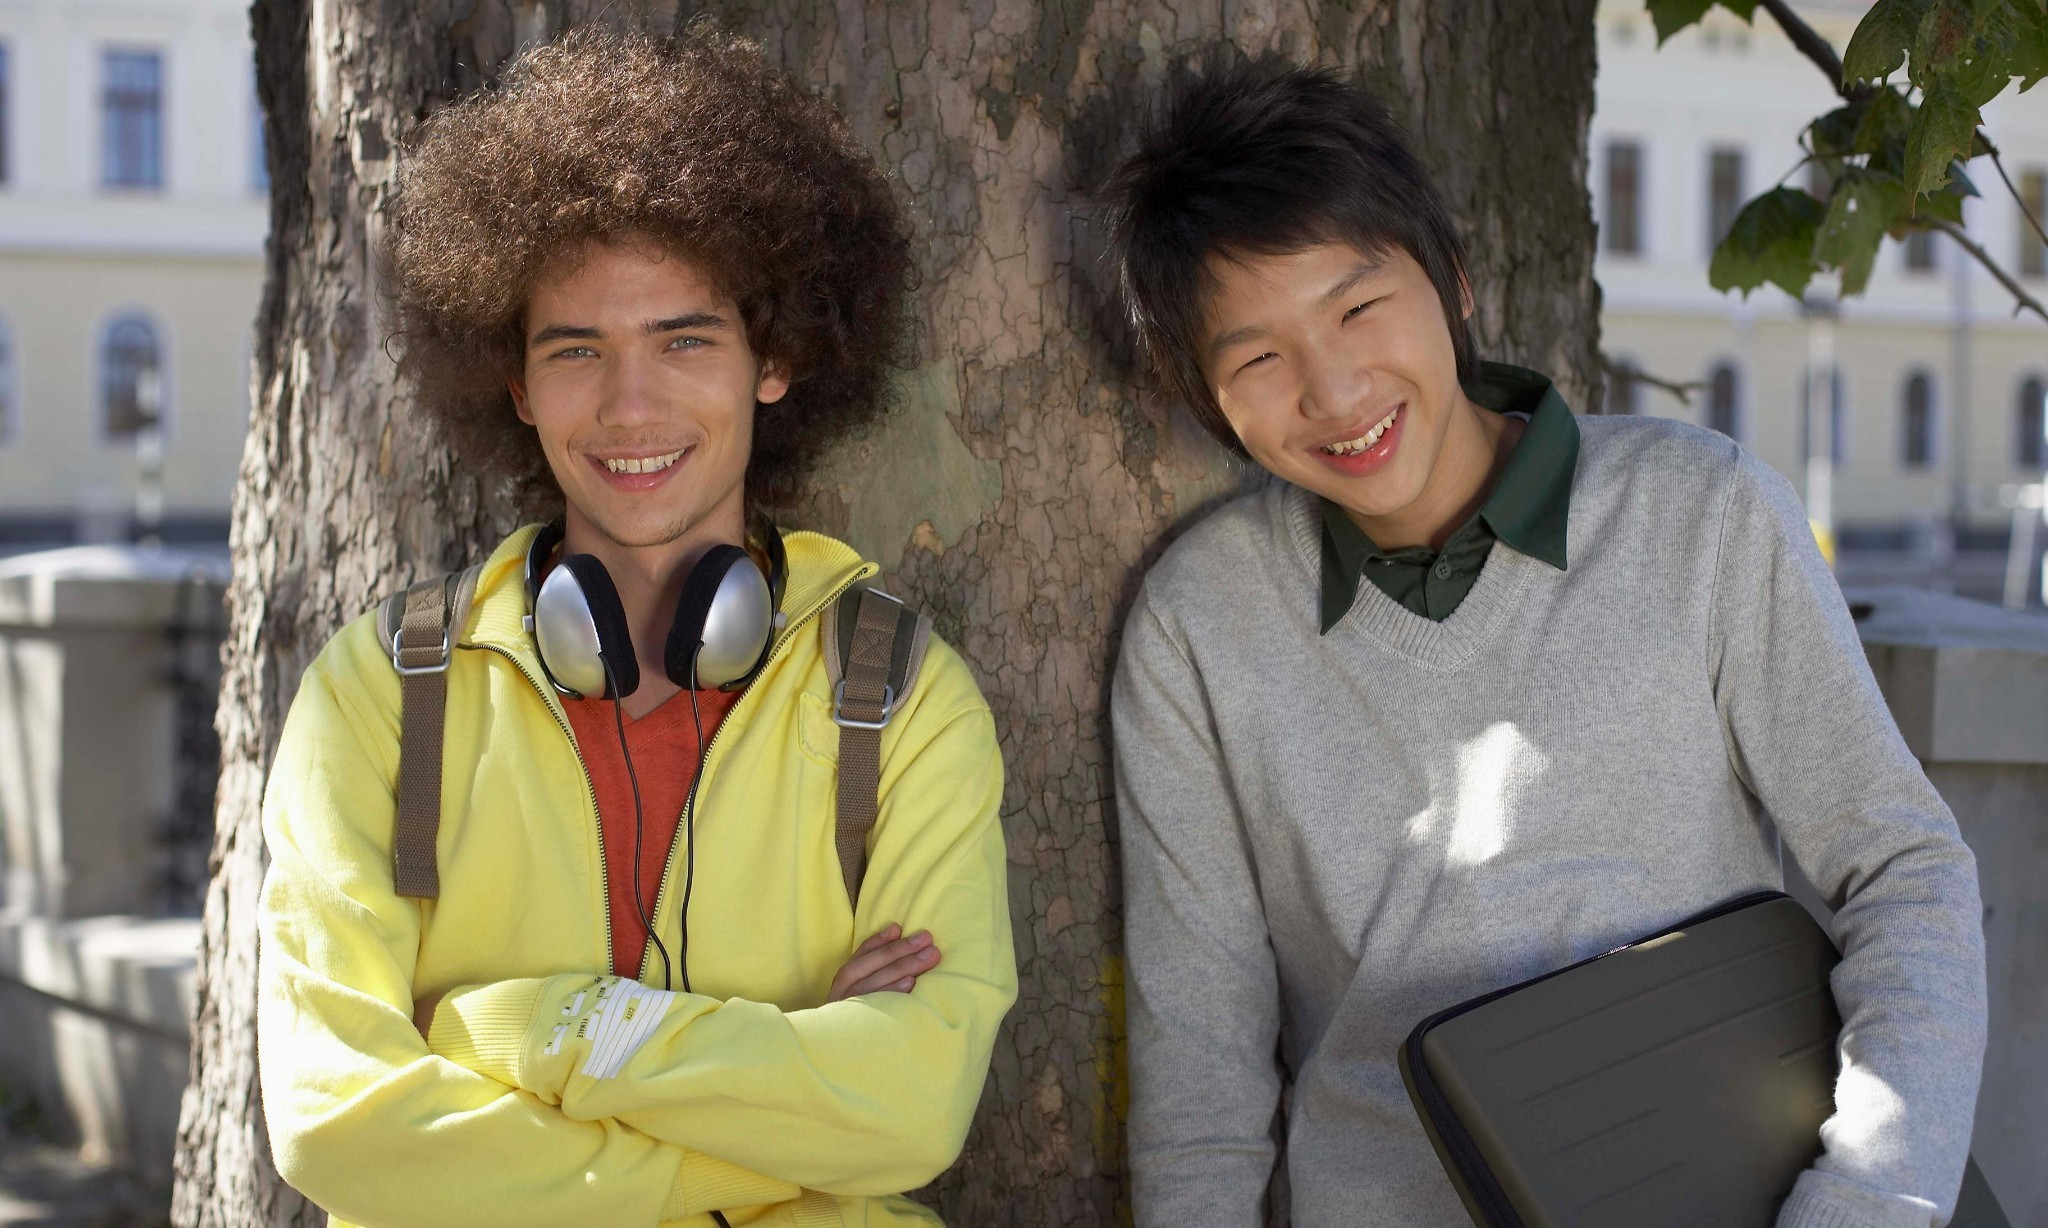 Who are Generation Z? The latest data on today's teens